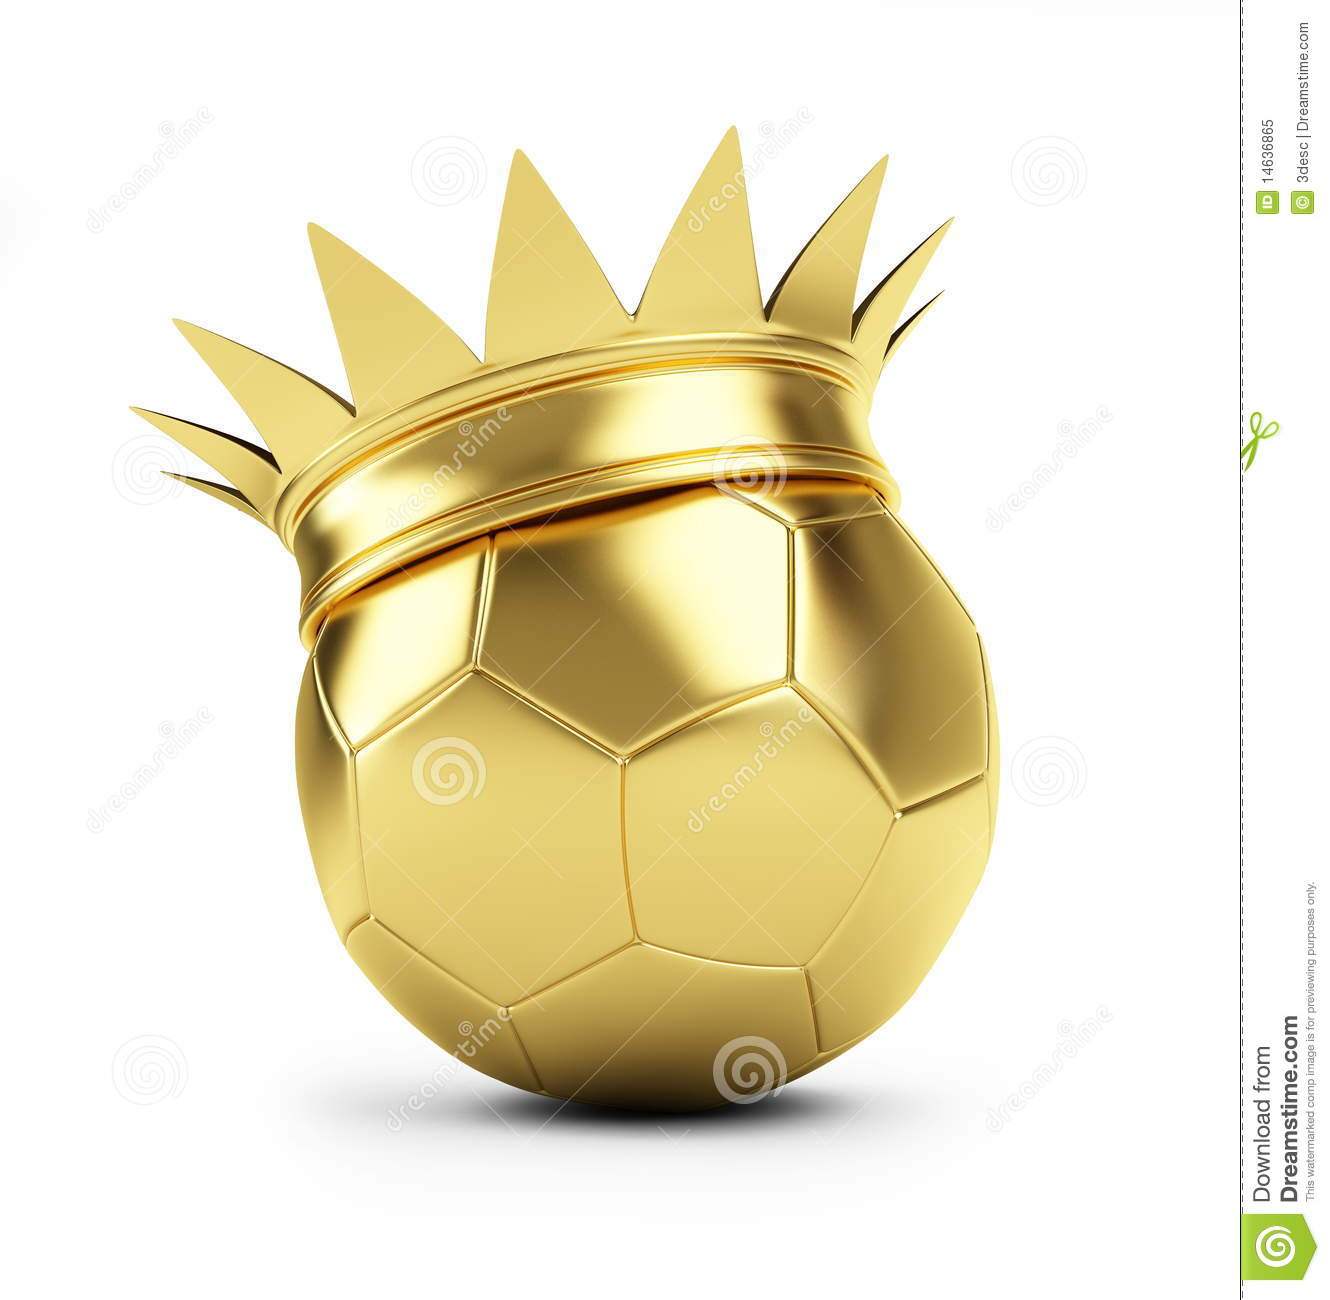 Gold Soccer Ball Crown Royalty Free Stock Photo - Image: 14636865